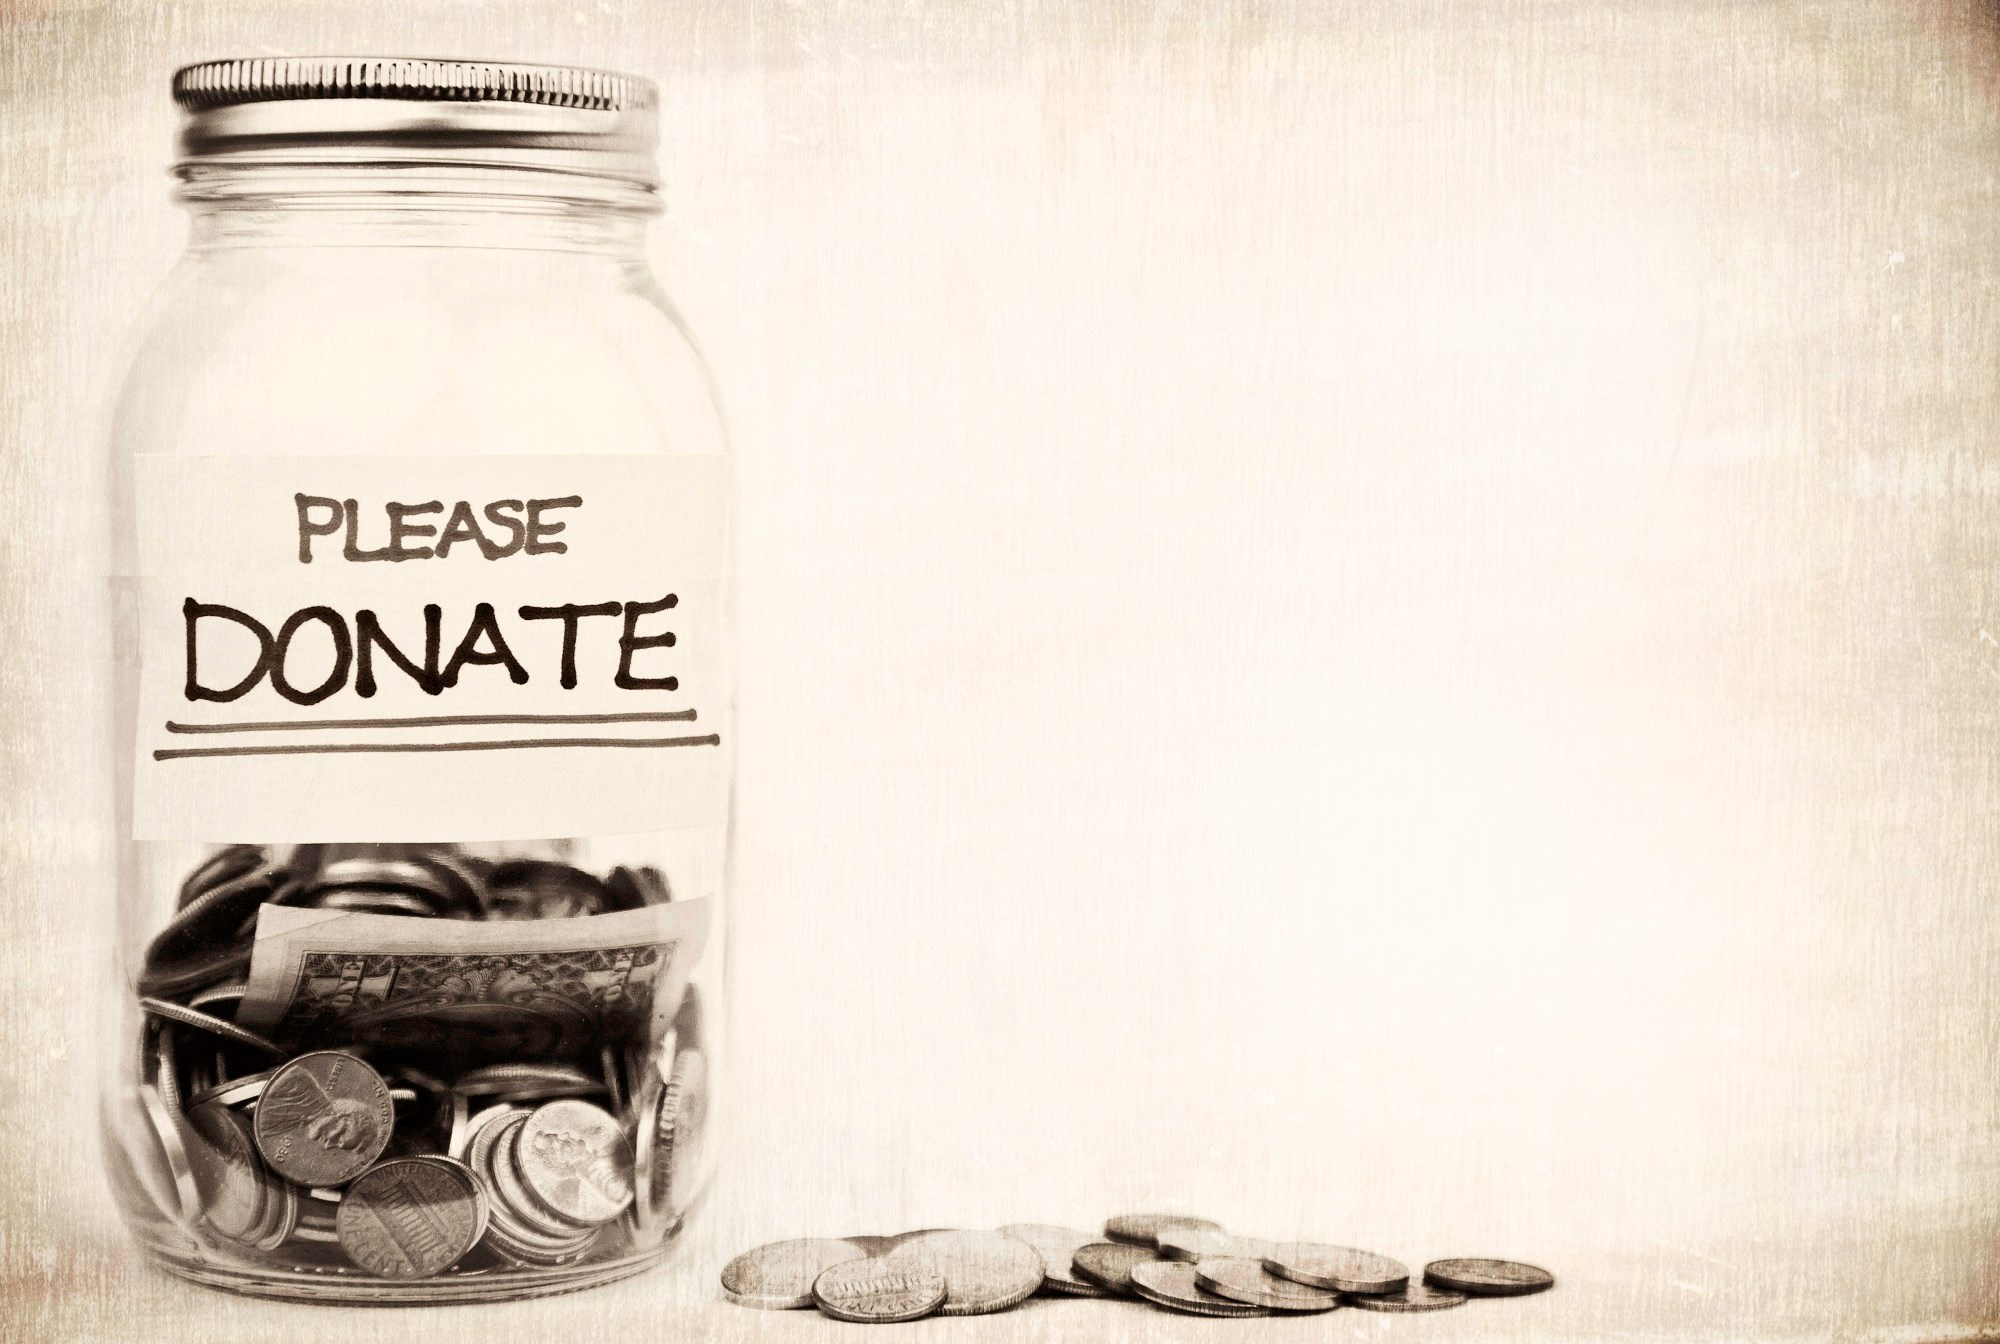 There are a concerning number of GoFundMe campaigns raising money for treatments that are not scientifically supported.